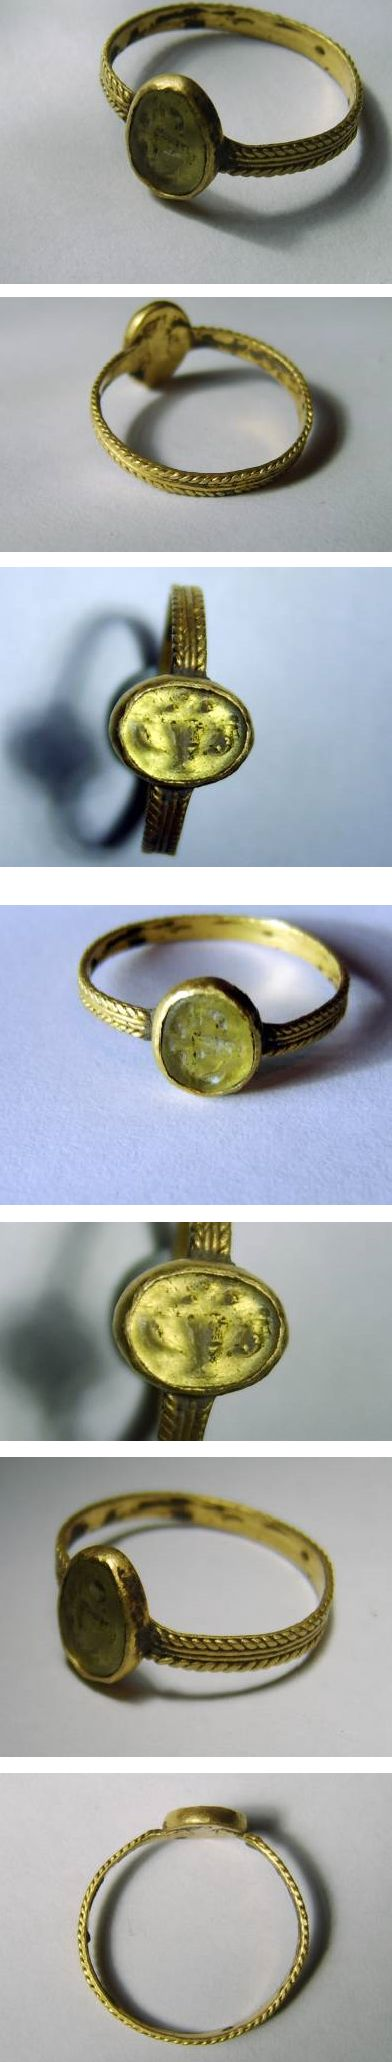 ROMAN GOLD RING SET WITH CHALCEDONY INTAGLIO, ca 2nd century A.D.